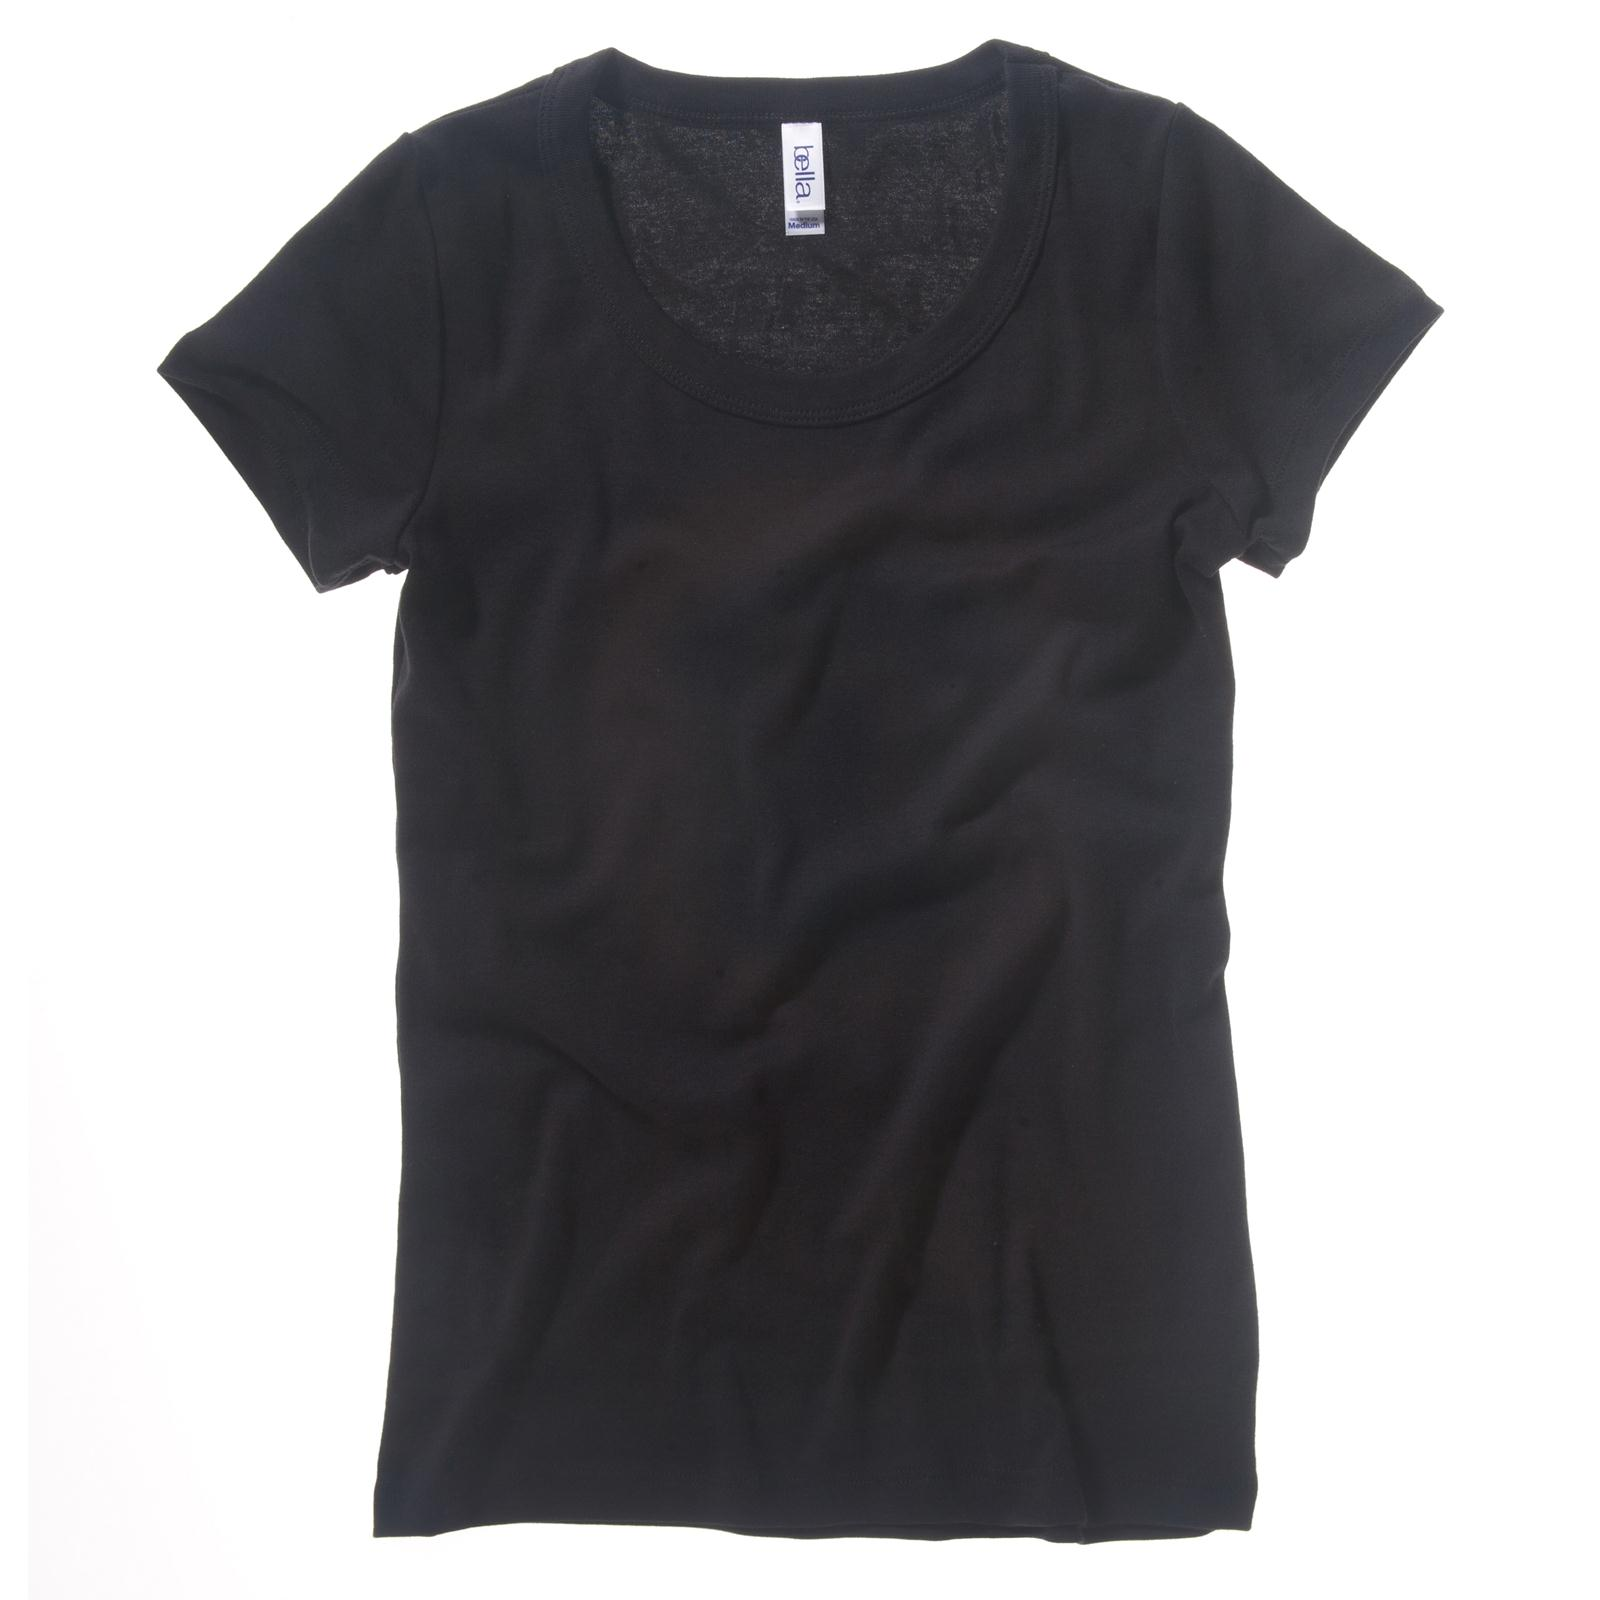 New bella canvas womens ladies cotton baby rib scoop neck Womens black tee shirt